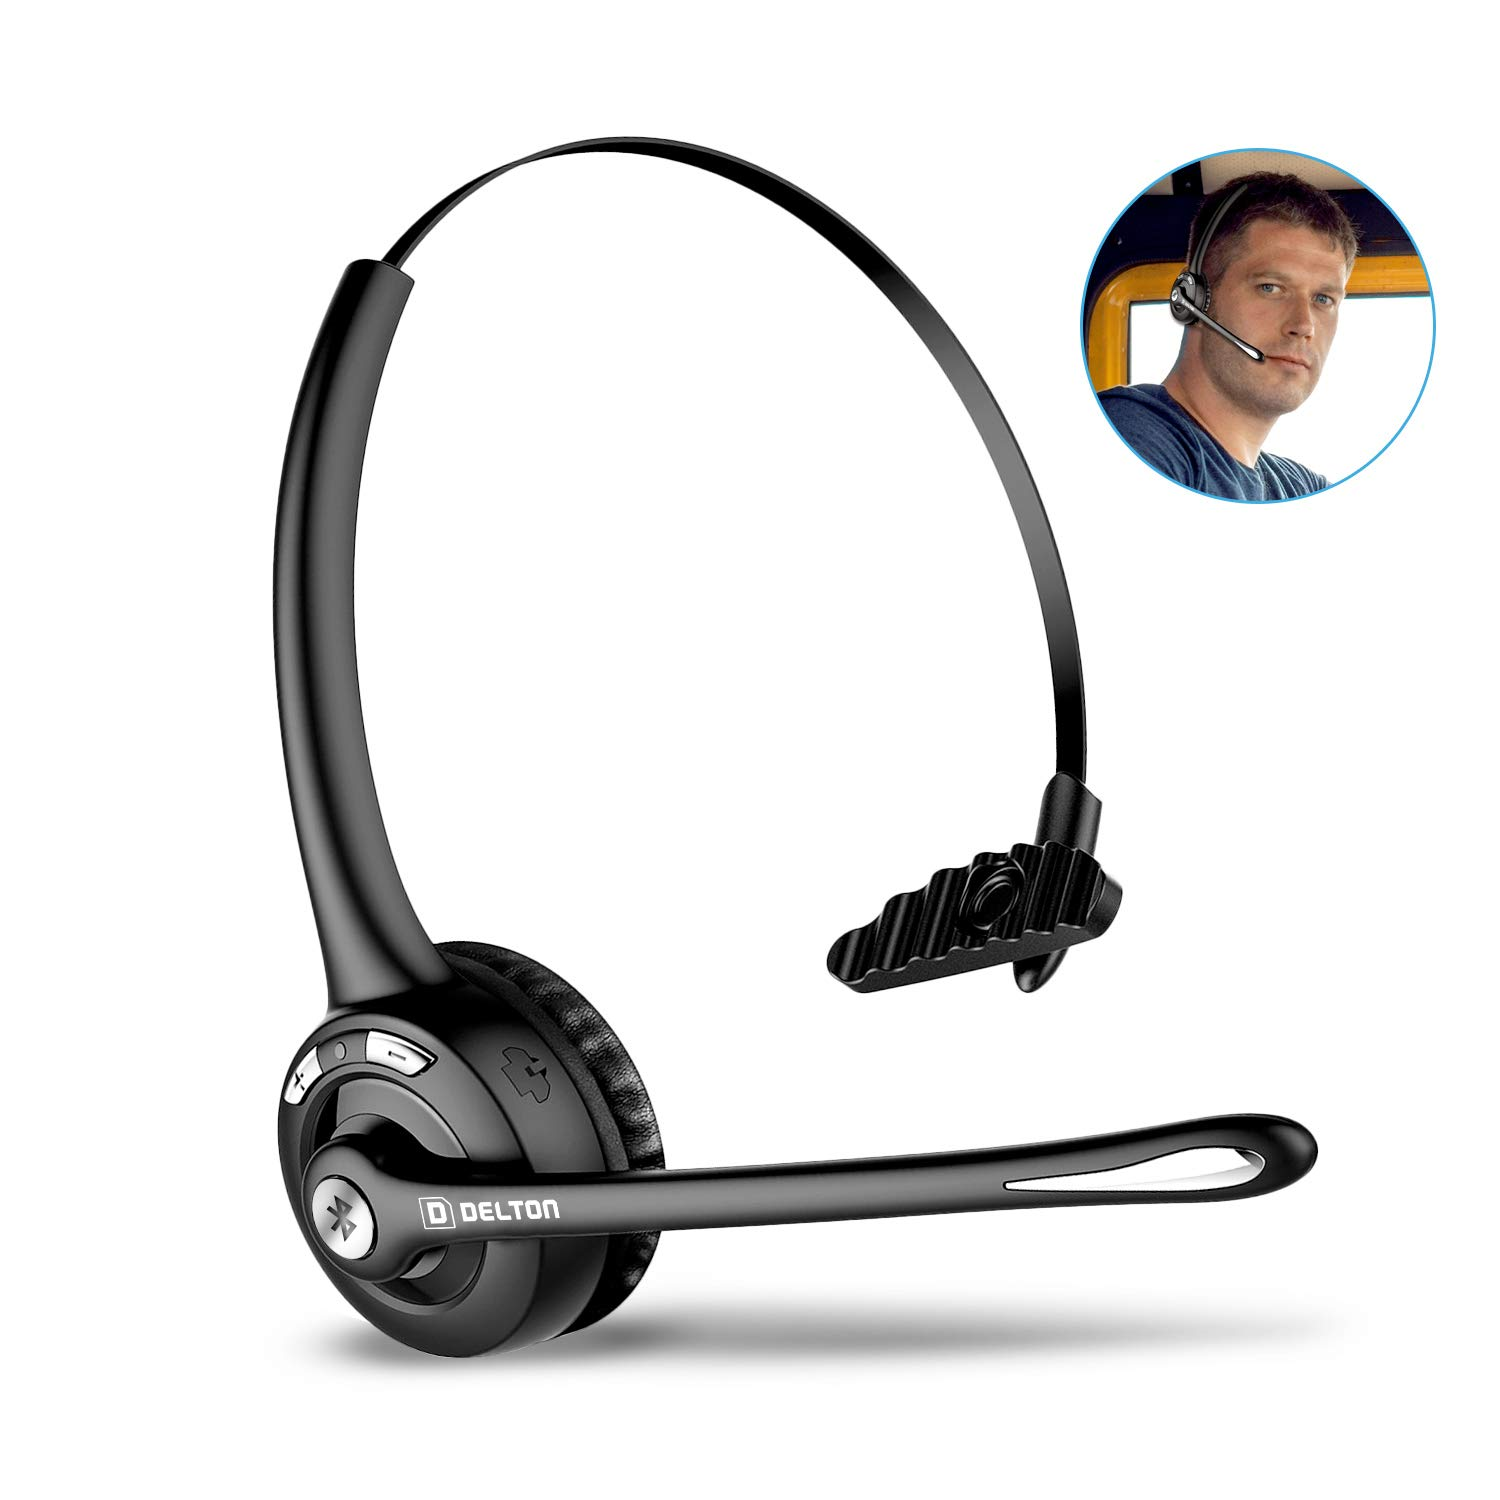 Delton Trucker Bluetooth Headset, Wireless Headphones w/Microphone, Noise Cancelling Headphones for Truck Driver, Wireless Over the Head Earpiece with Mic for Skype, Call Centers - 18Hrs Talking Time